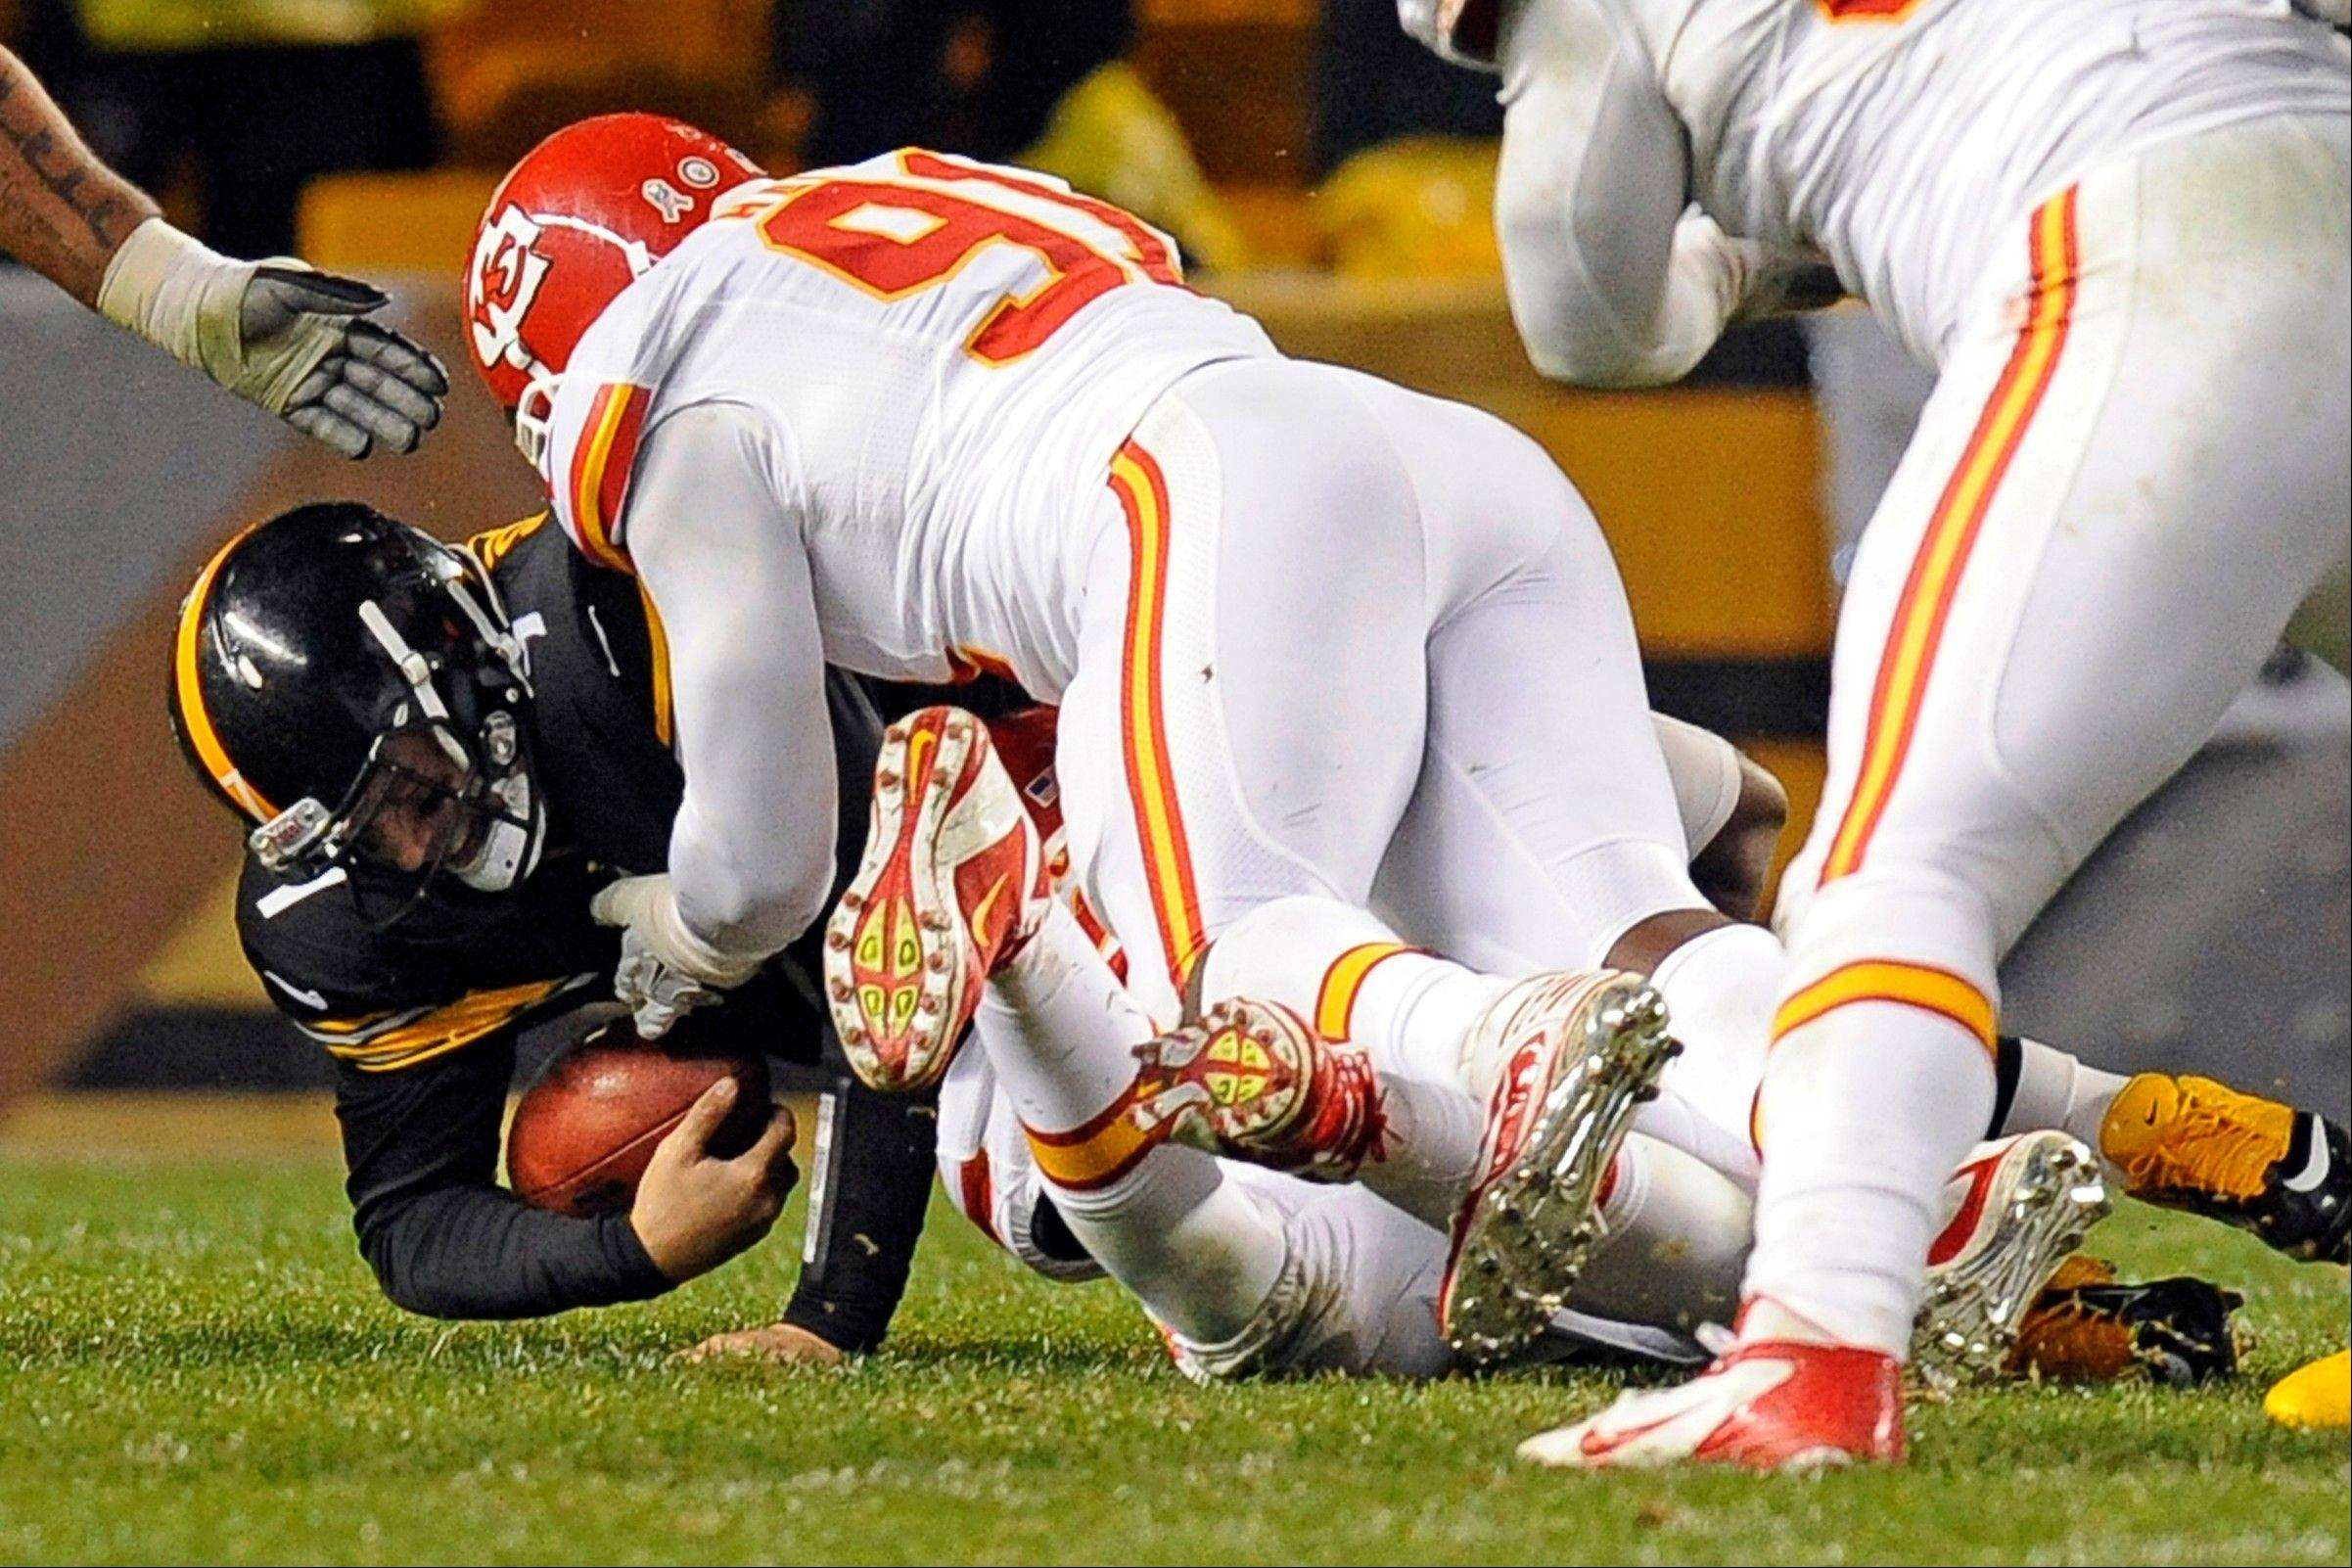 Pittsburgh Steelers quarterback Ben Roethlisberger is sacked by Kansas City Chiefs outside linebacker Tamba Hali (91) Monday during the third quarter in Pittsburgh. Roethlisberger left the game with a right shoulder injury.